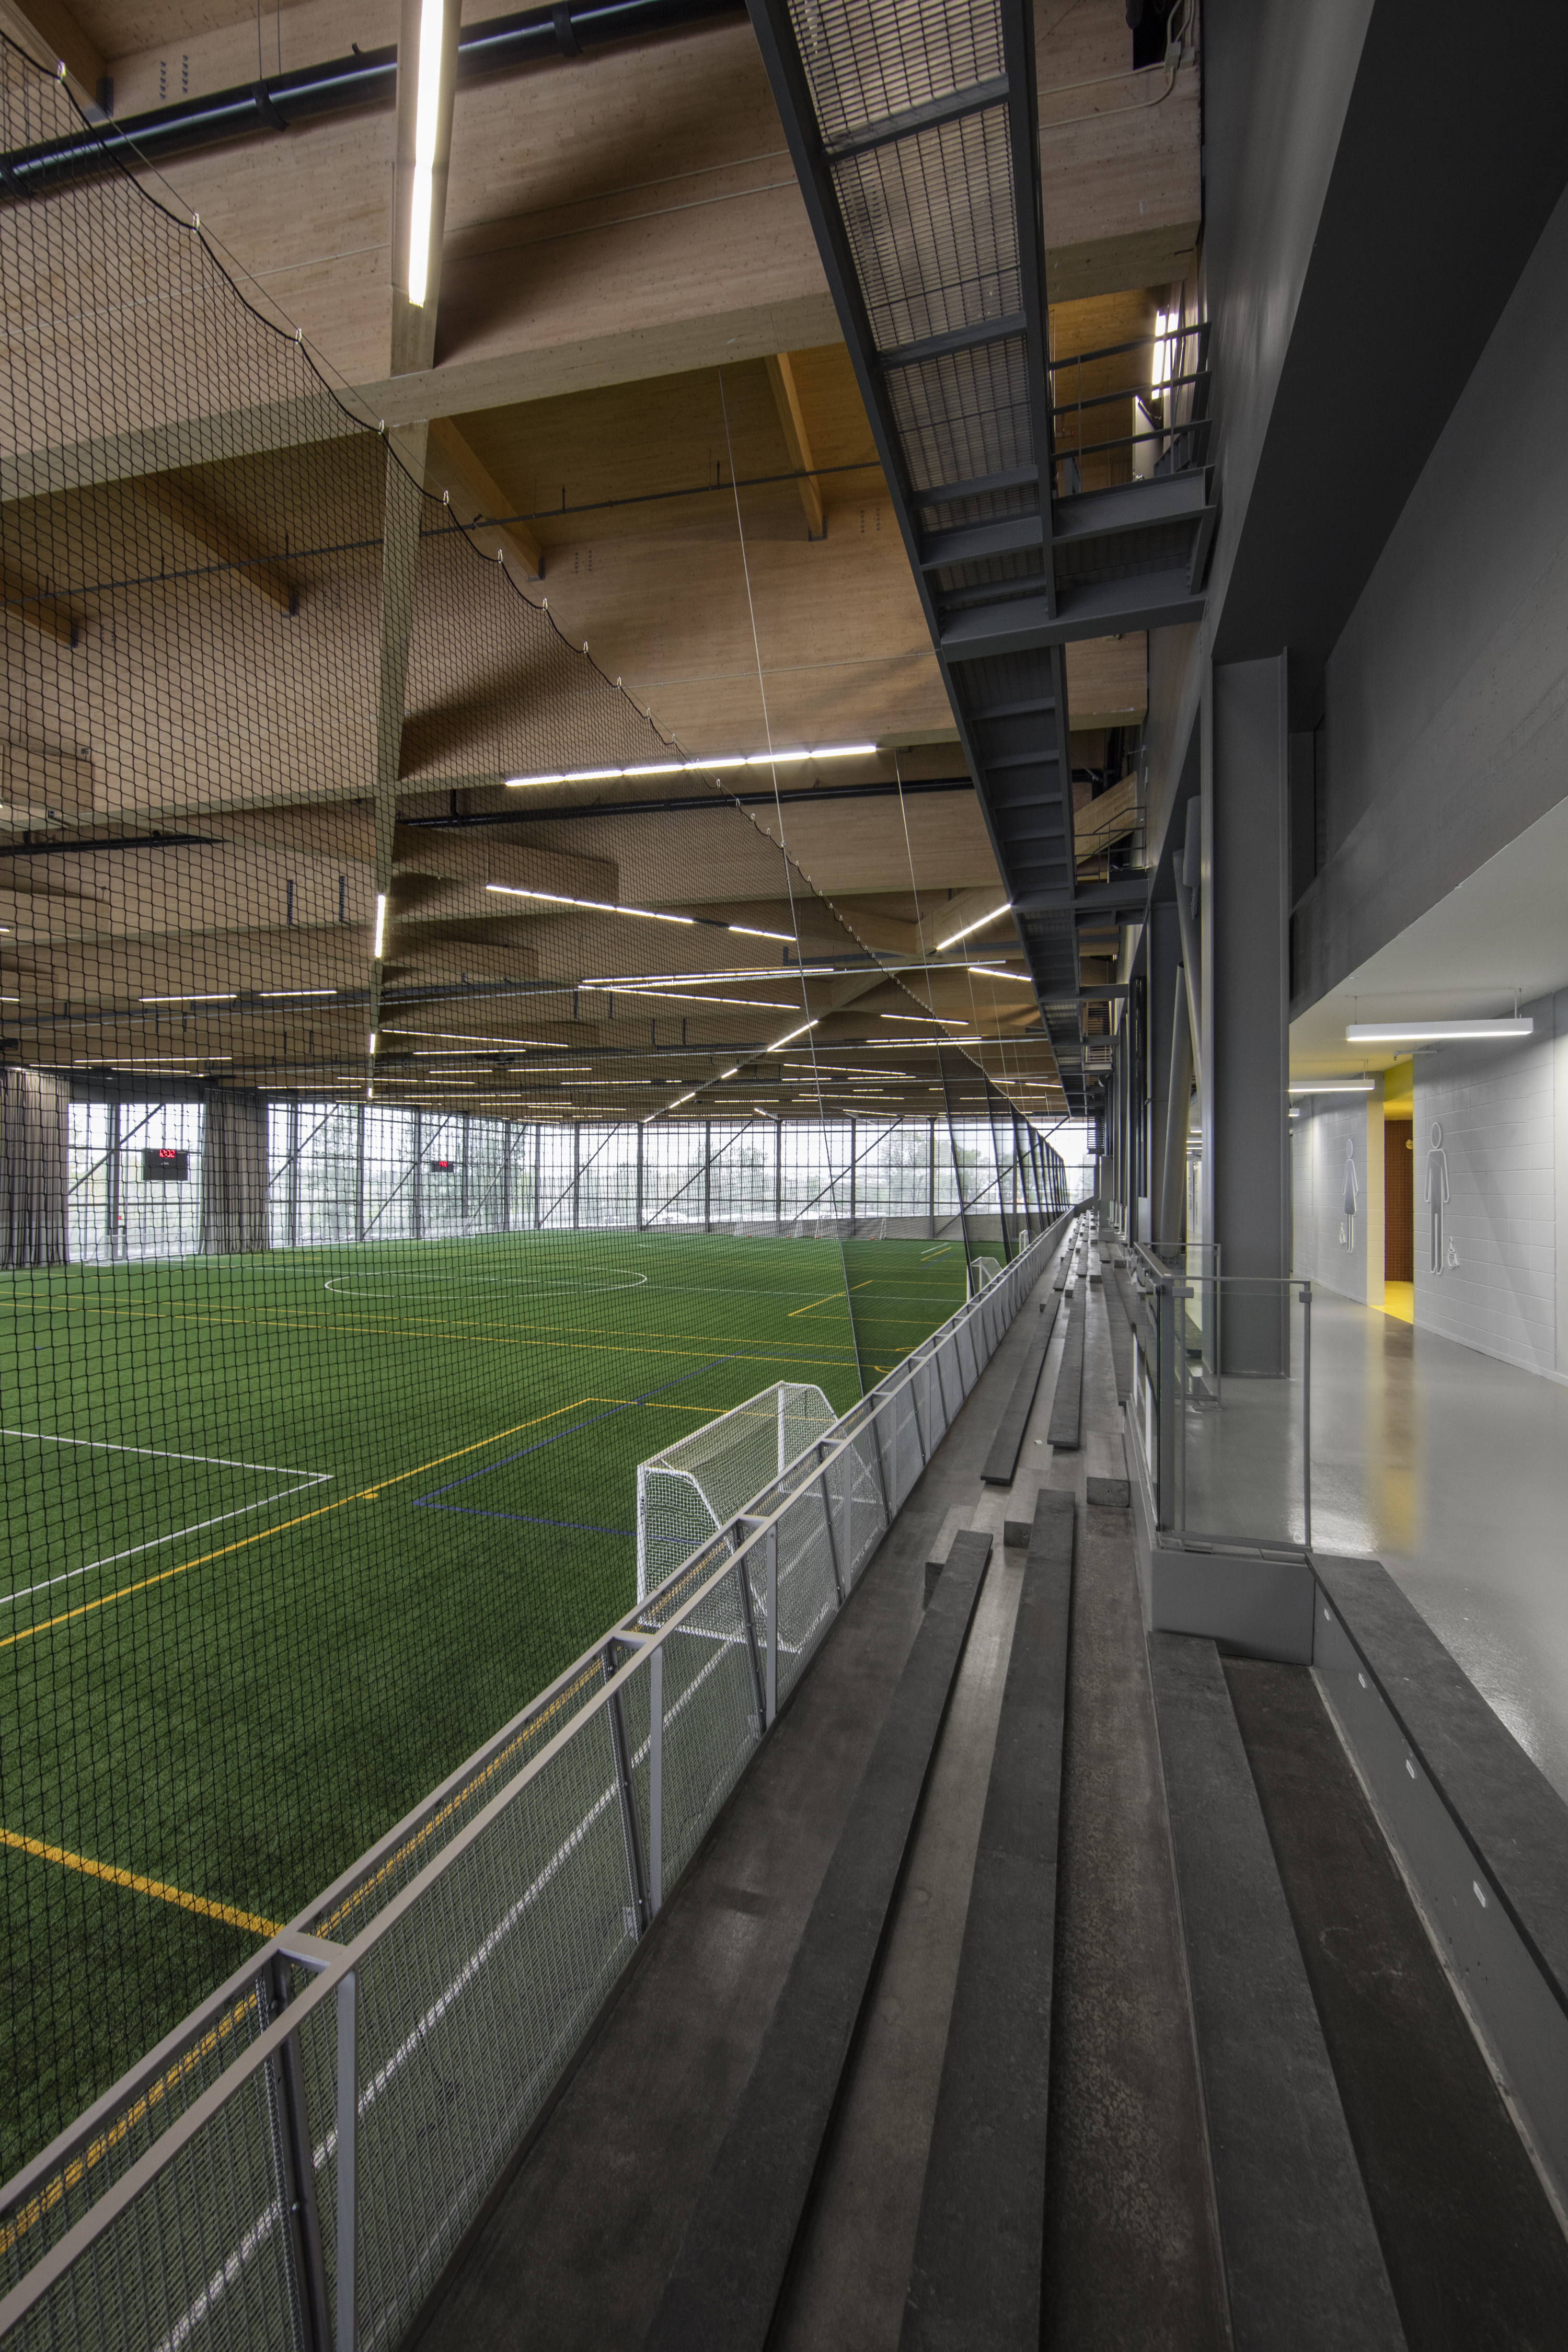 Banker Wire's M12Z-17 was selected as the enclosure, which doubles as a balcony railing, to protect the spectators and other people that utilize the facilities.